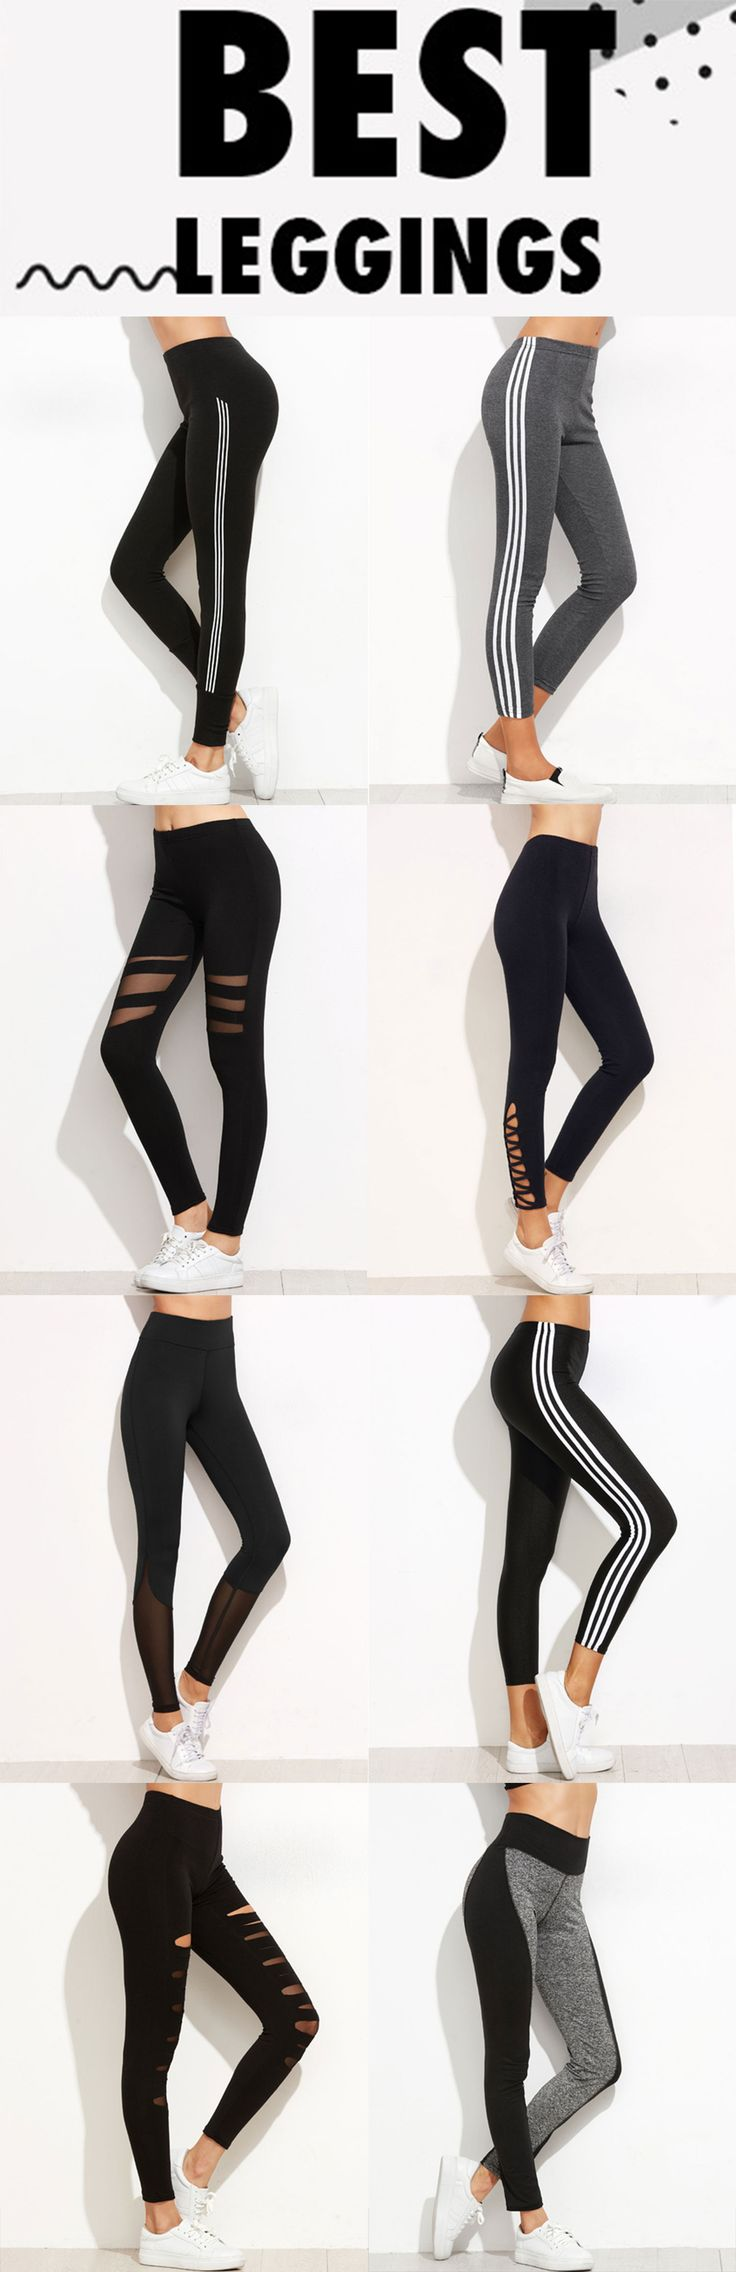 Legging Collection 2016 - romwe.com